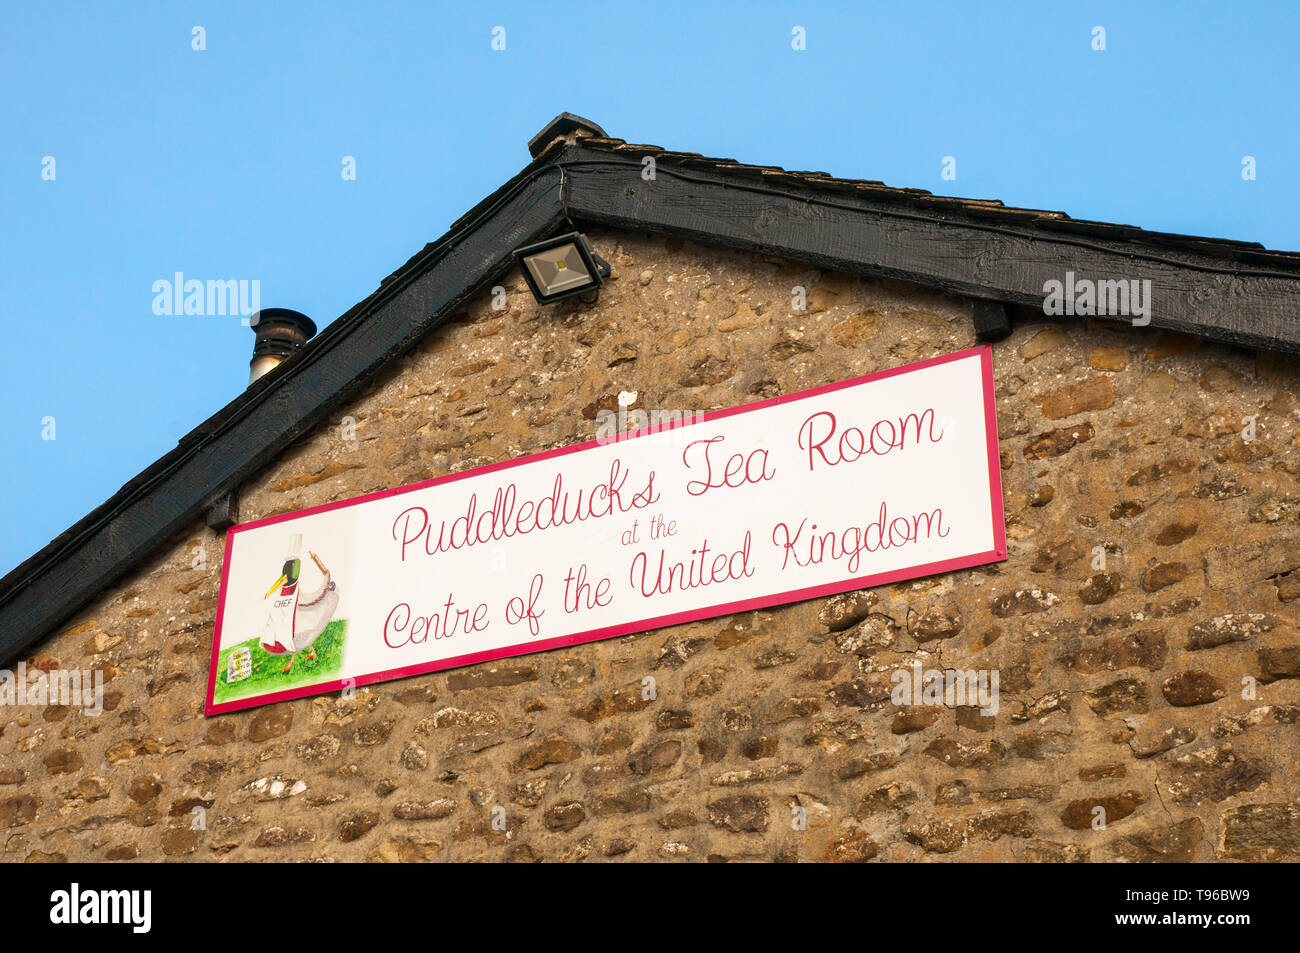 Sign on side of Post Office building at Dunsop Bridge Forest of Bowland Lancashire England UK.Puddleducks Tea Room at the Centre of the United Kingdom Stock Photo